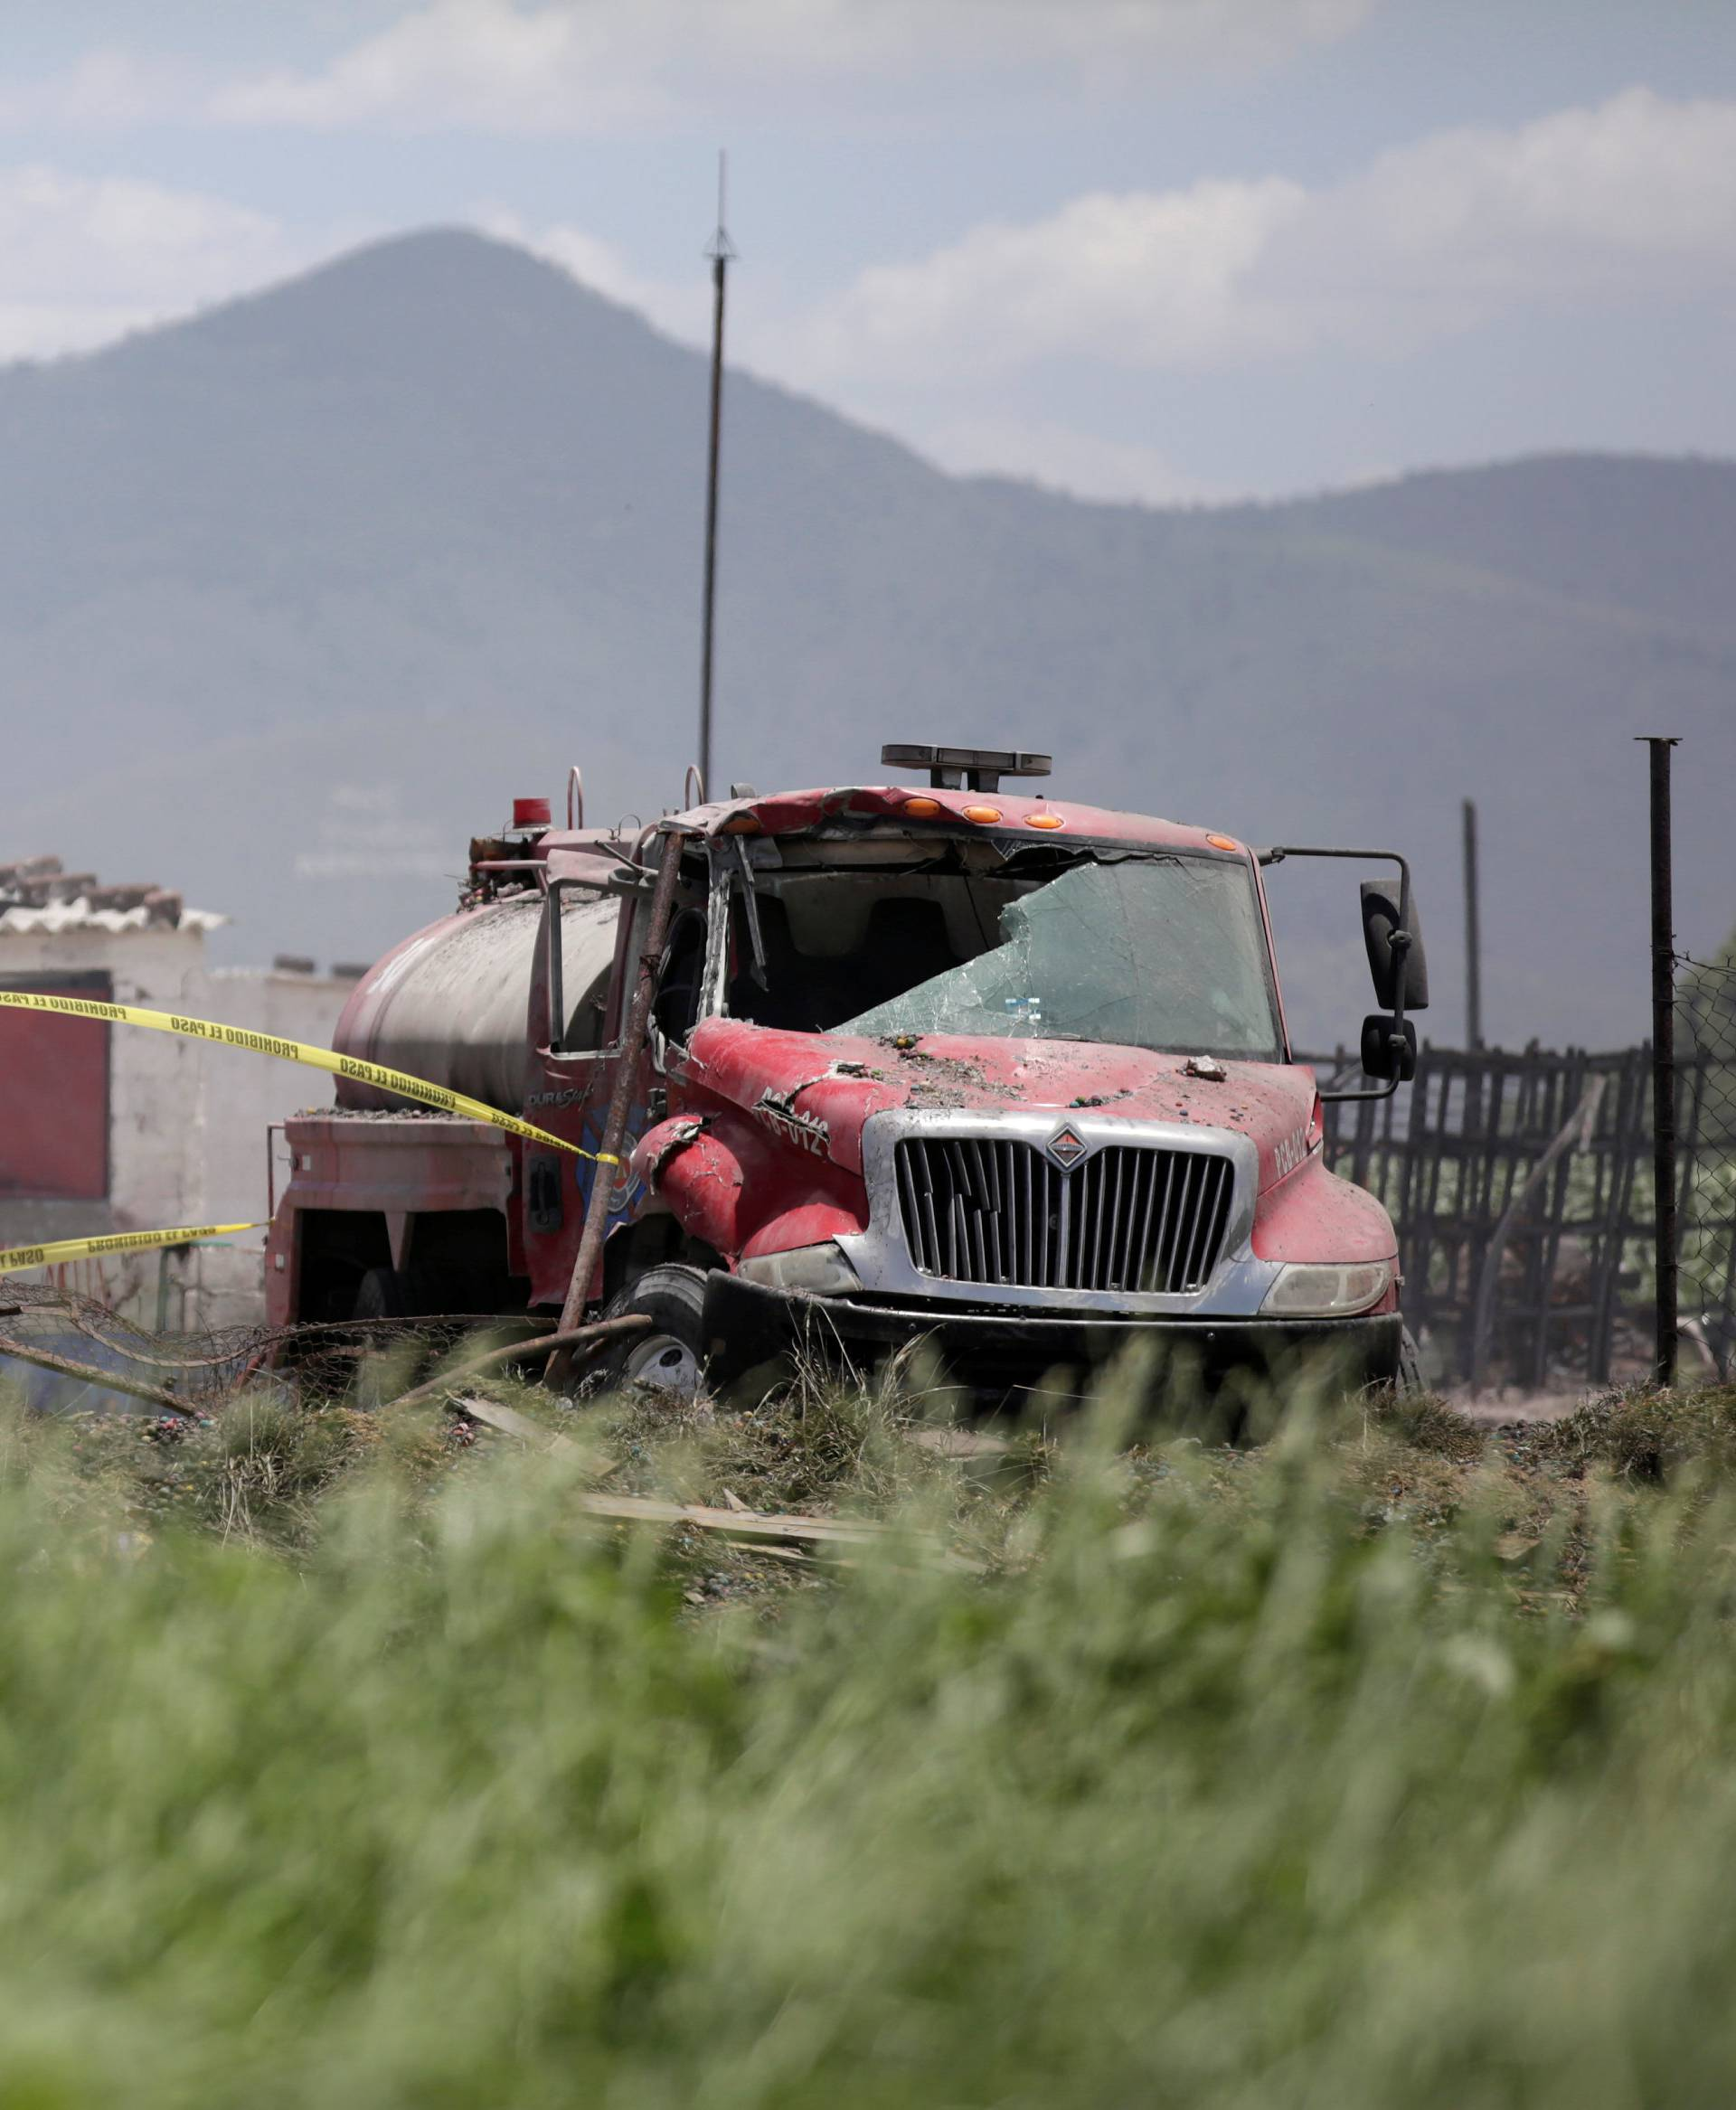 A forensic technician inspects a site damaged due to fireworks explosions in the municipality of Tultepec